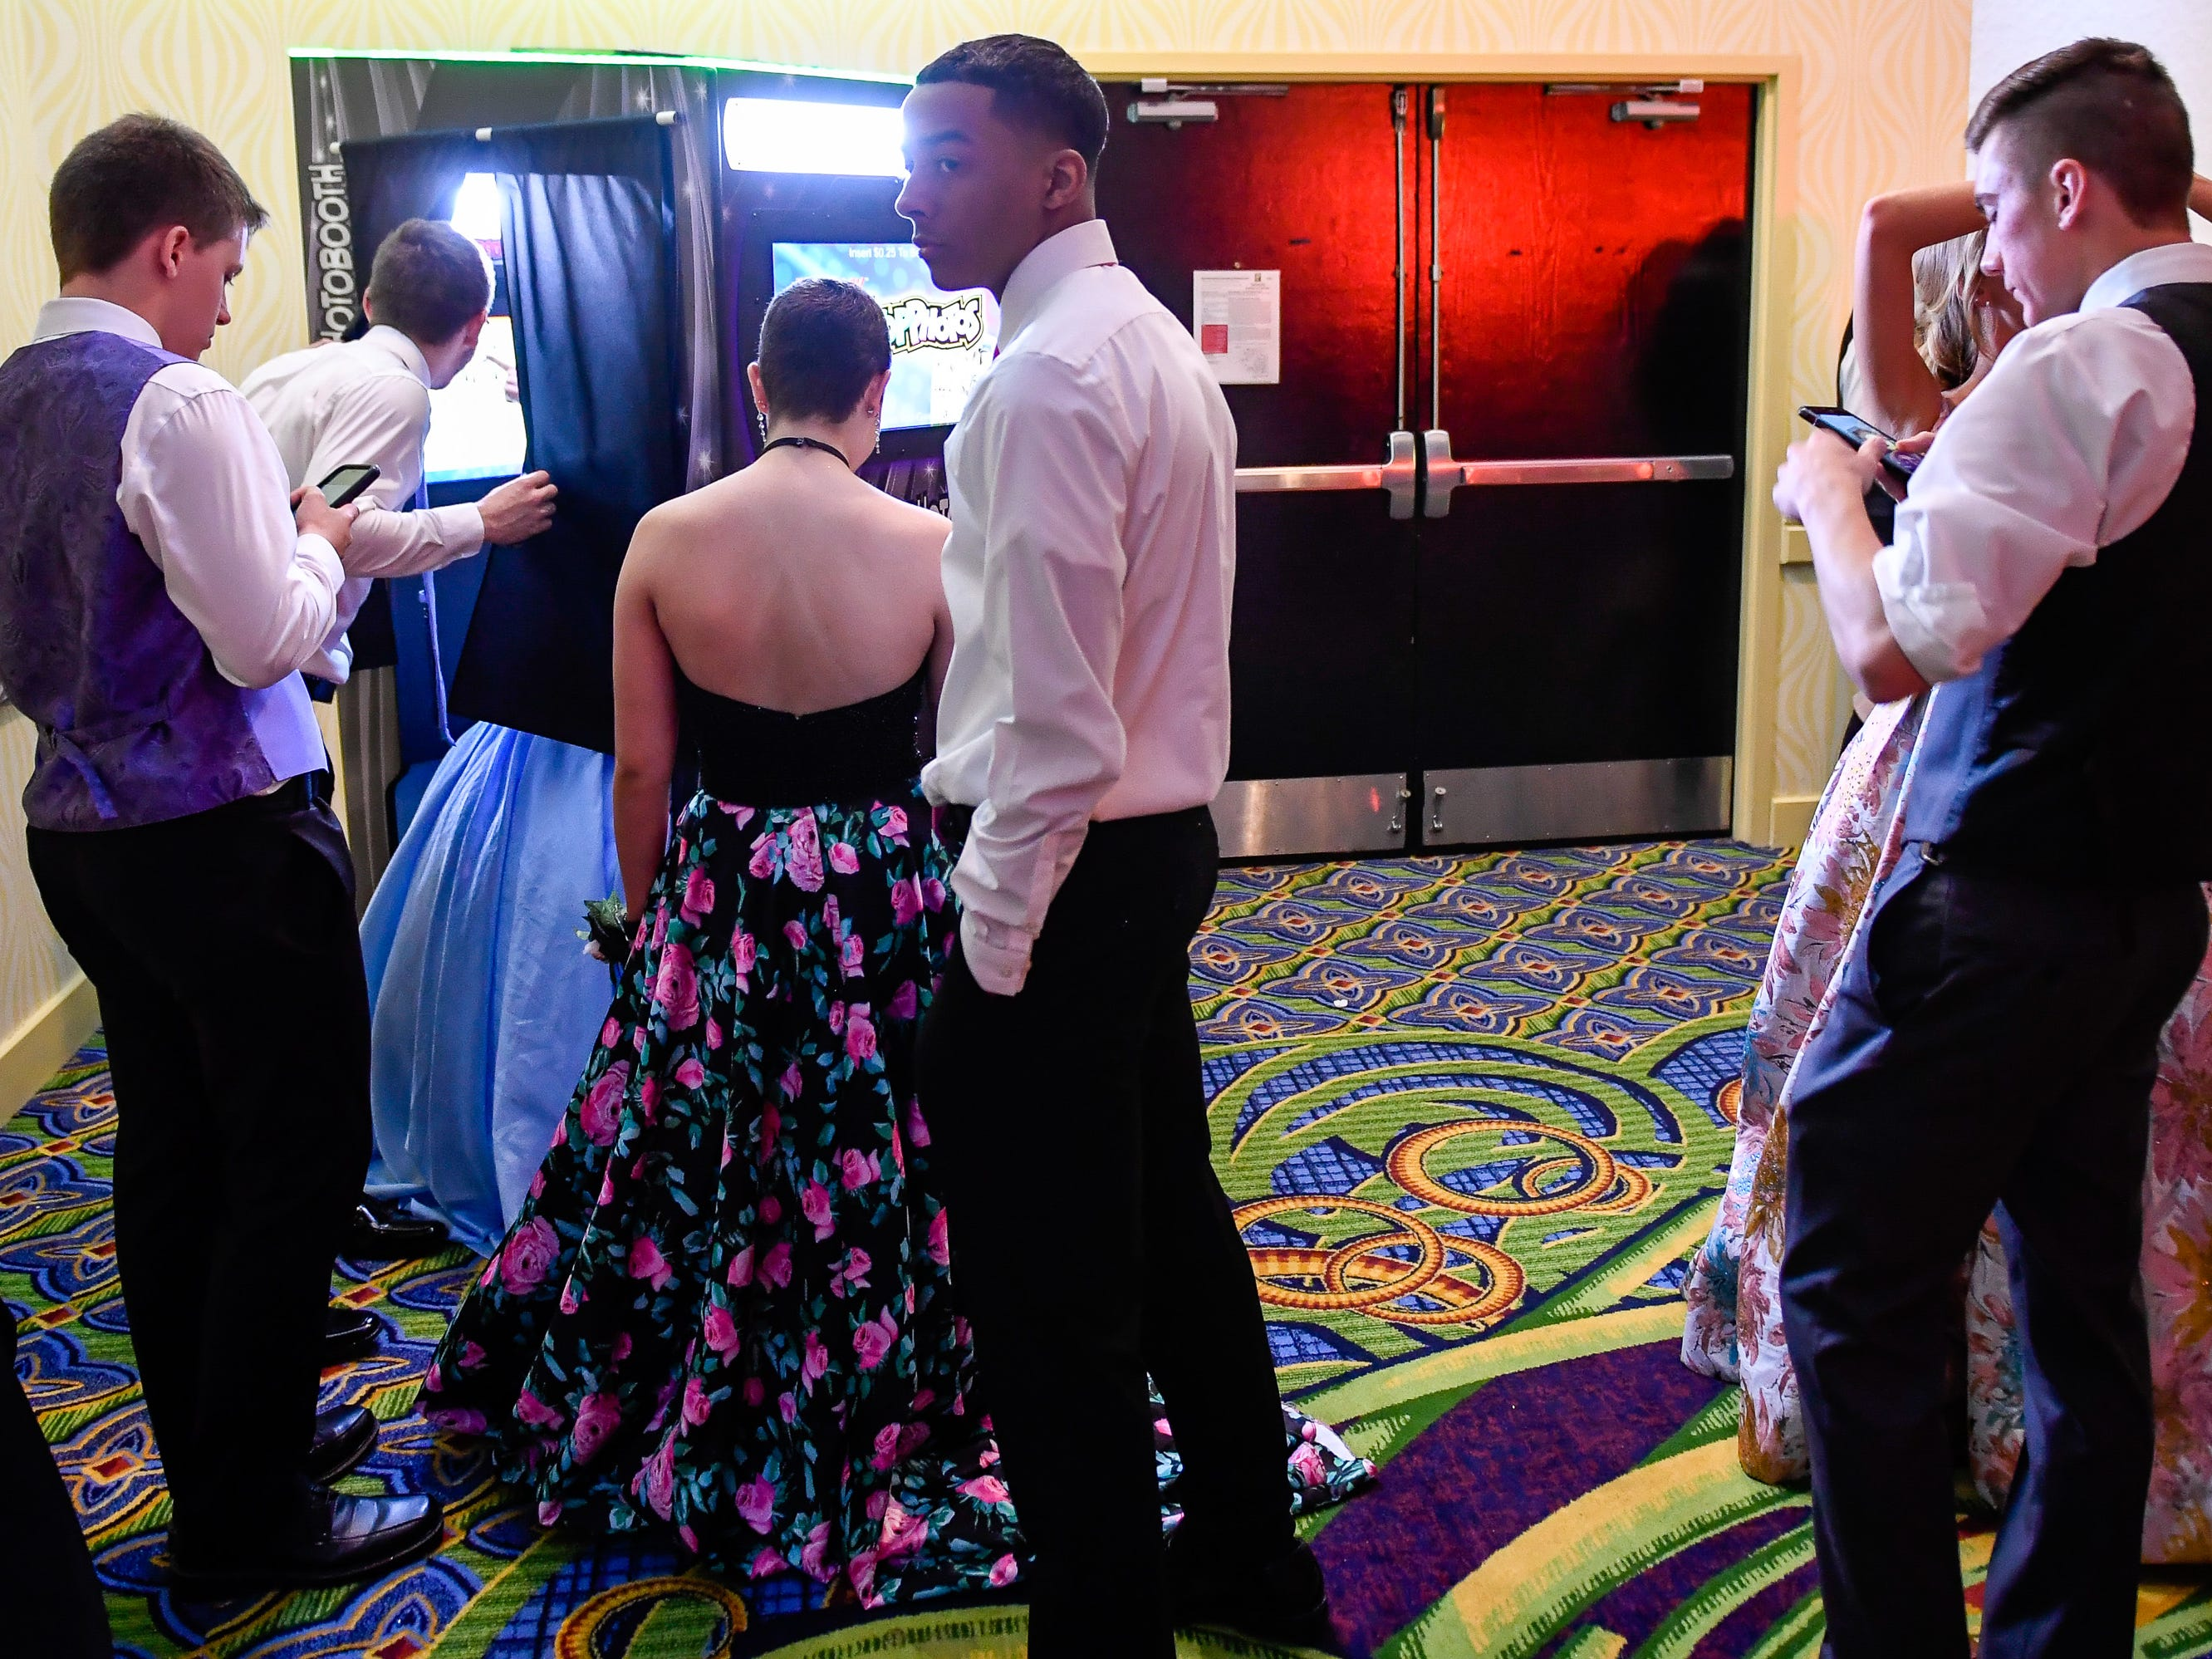 Lining up at the photo booth at the Tecumseh High School prom held at the Airport Holiday Inn Friday, April 26, 2019.